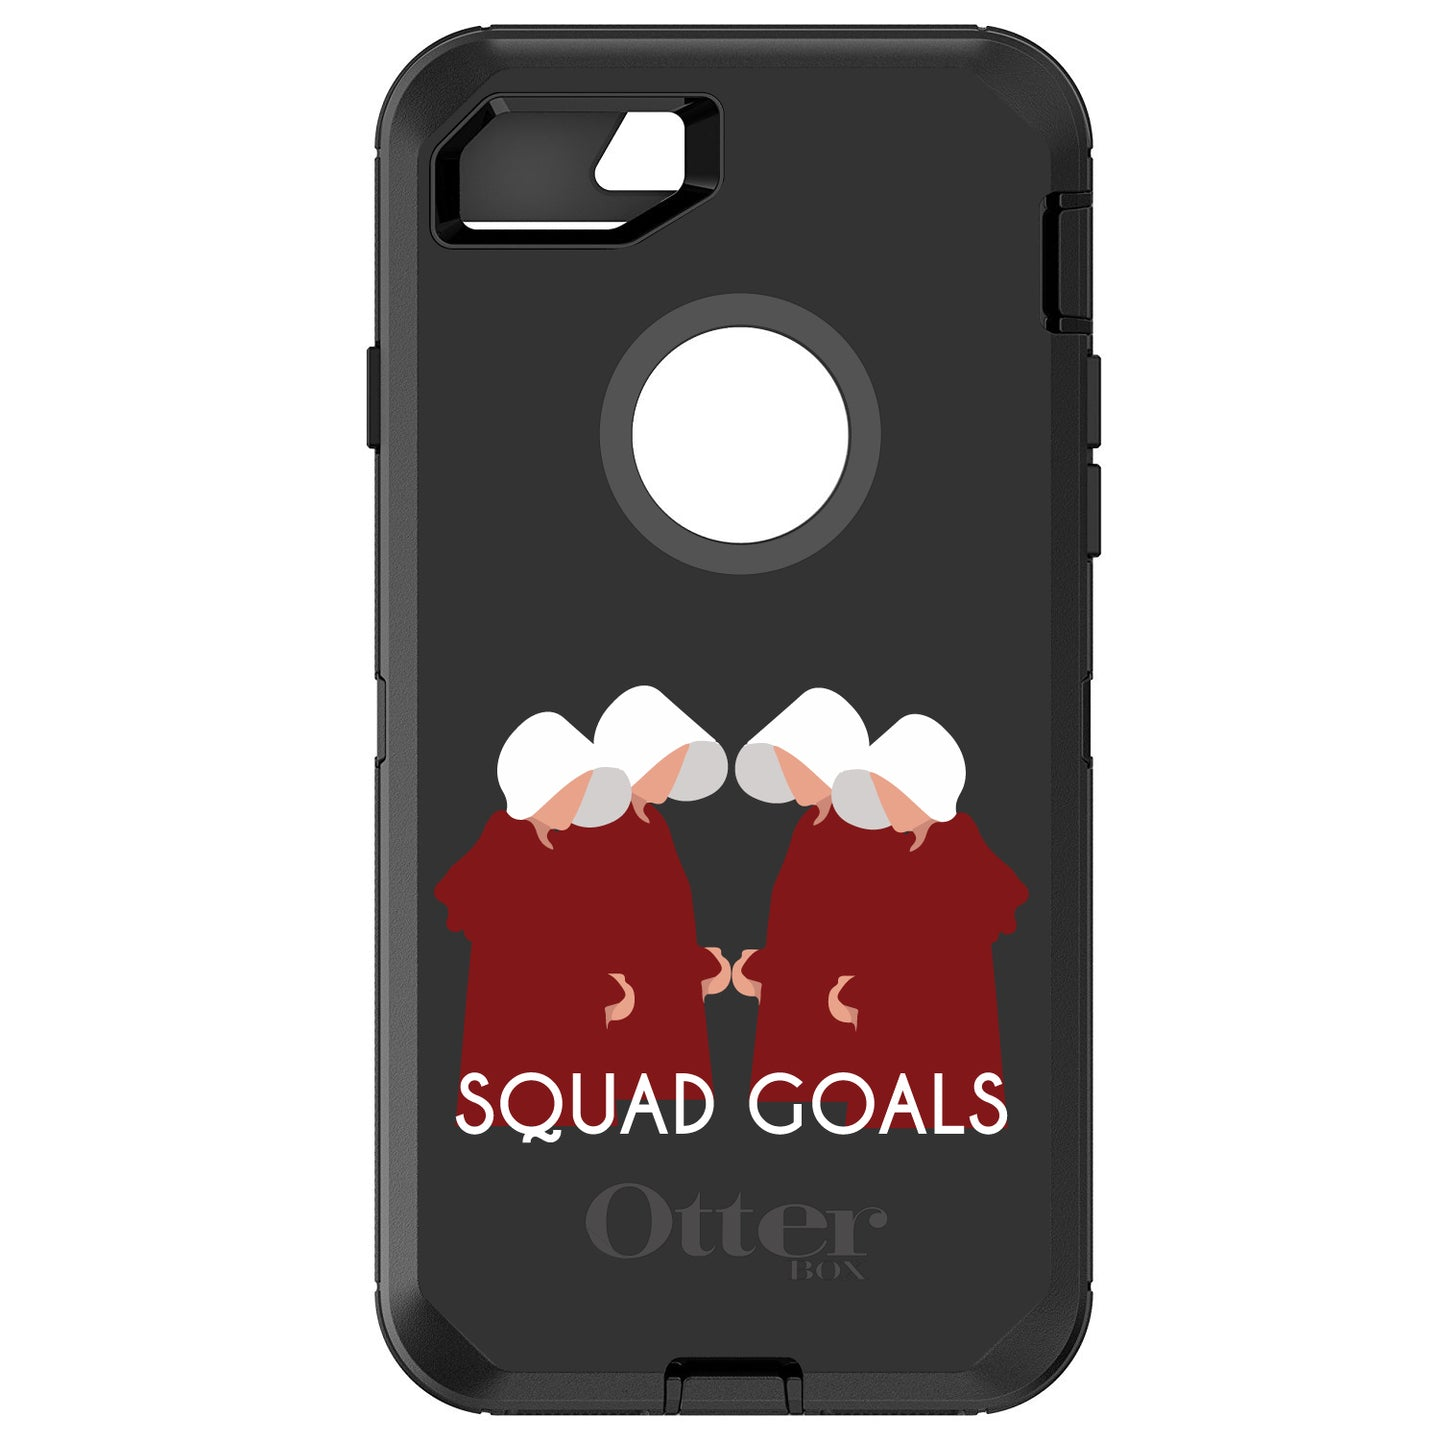 DistinctInk™ OtterBox Defender Series Case for Apple iPhone / Samsung Galaxy / Google Pixel - Handmaid's - Squad Goals